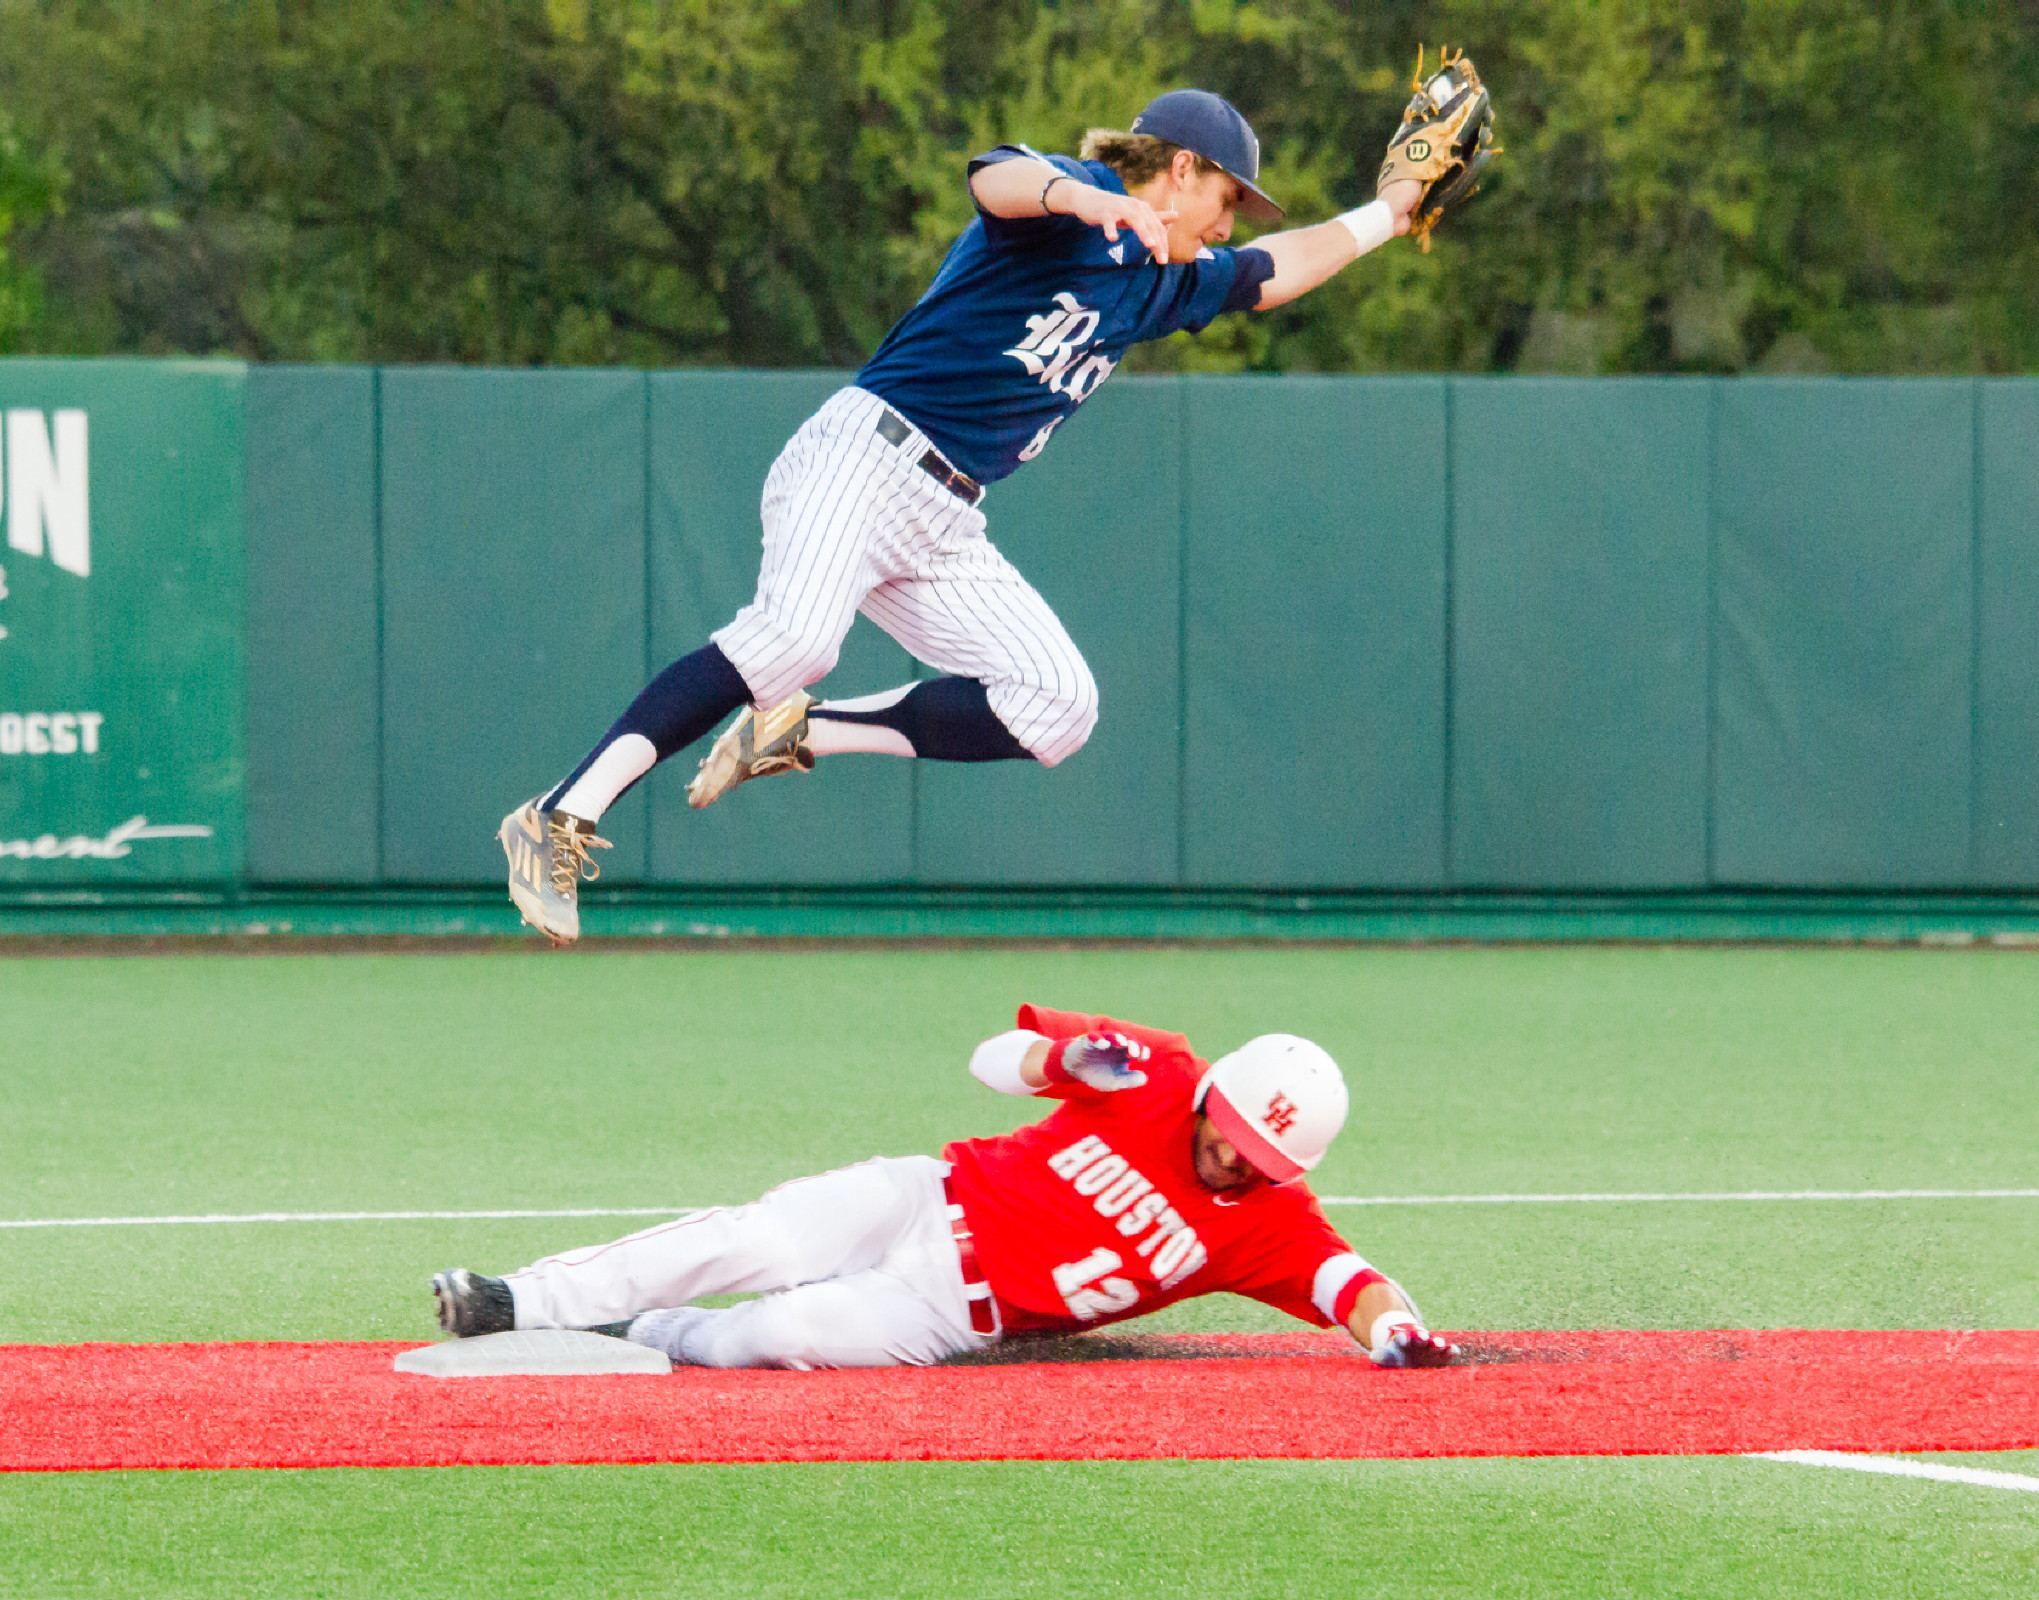 college baseball: university of houston vs rice (photo gallery